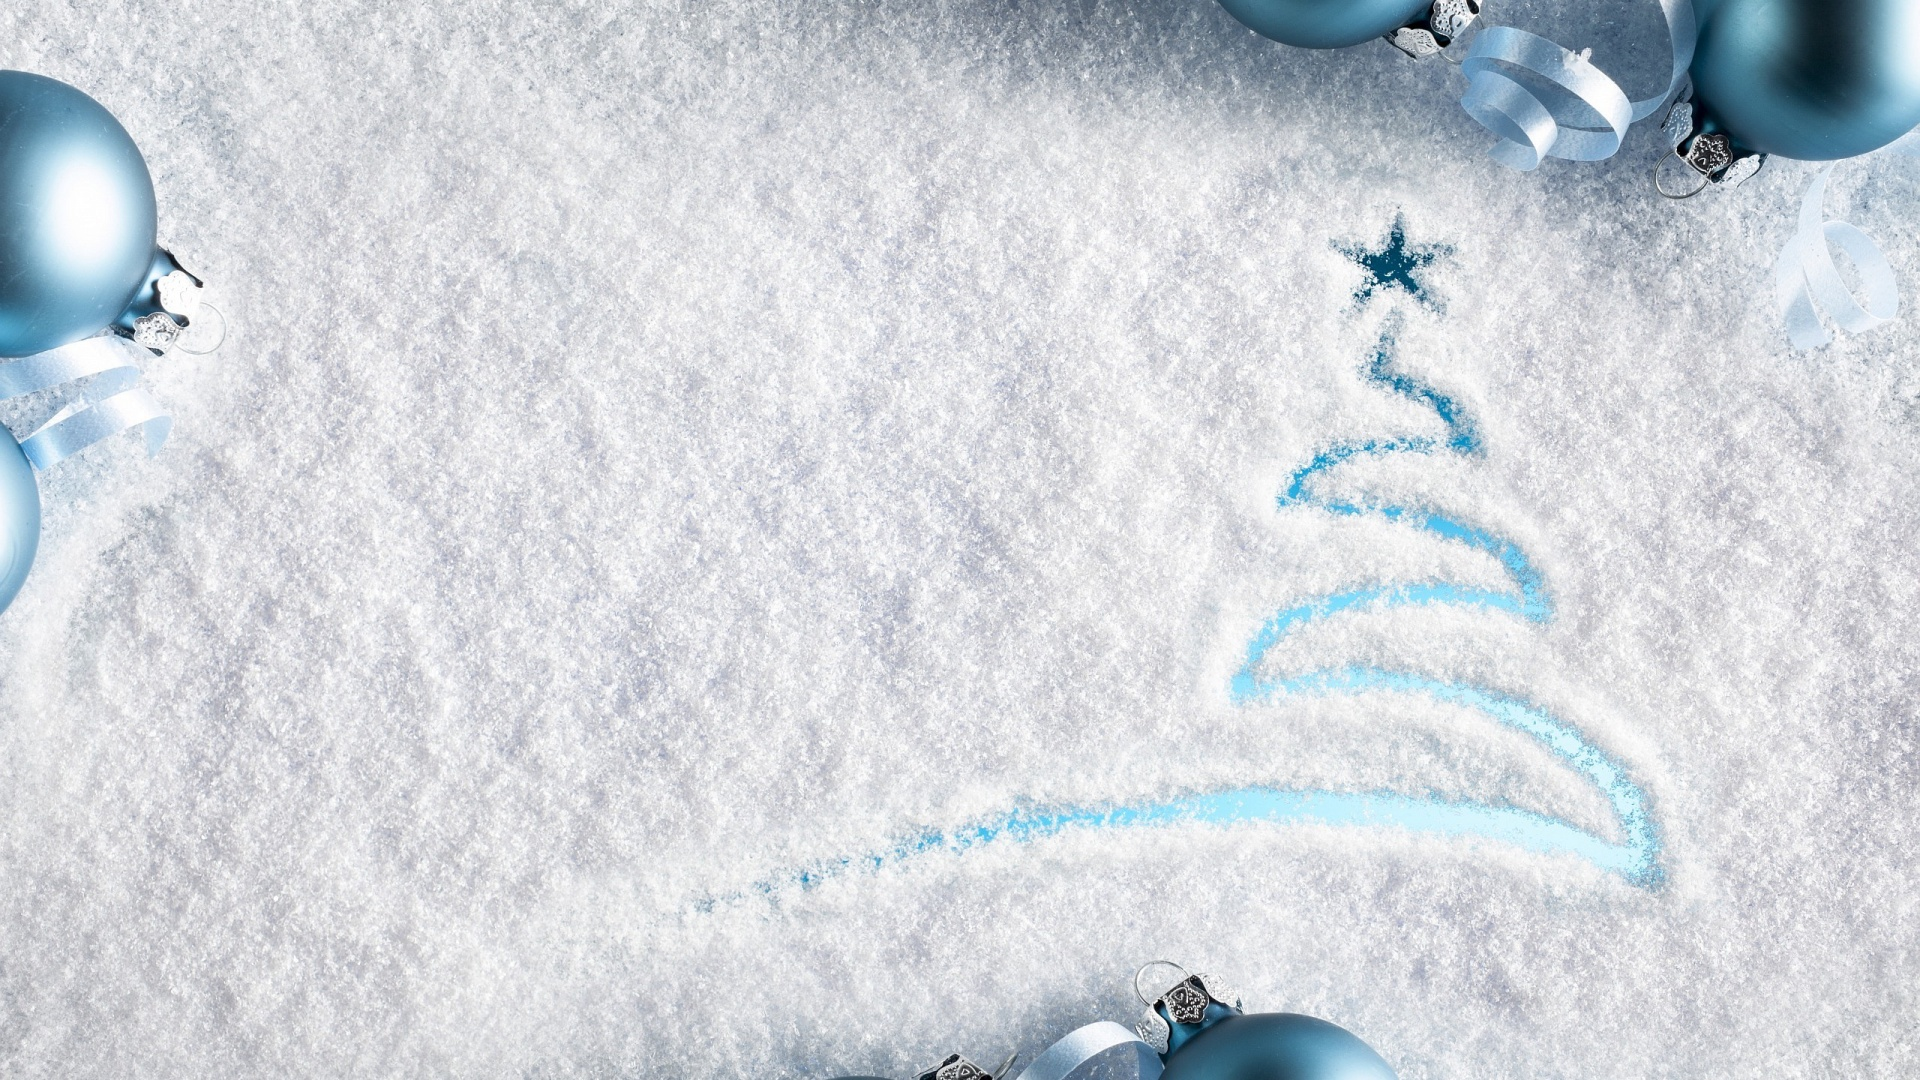 merry christmas cute hd wallpapers